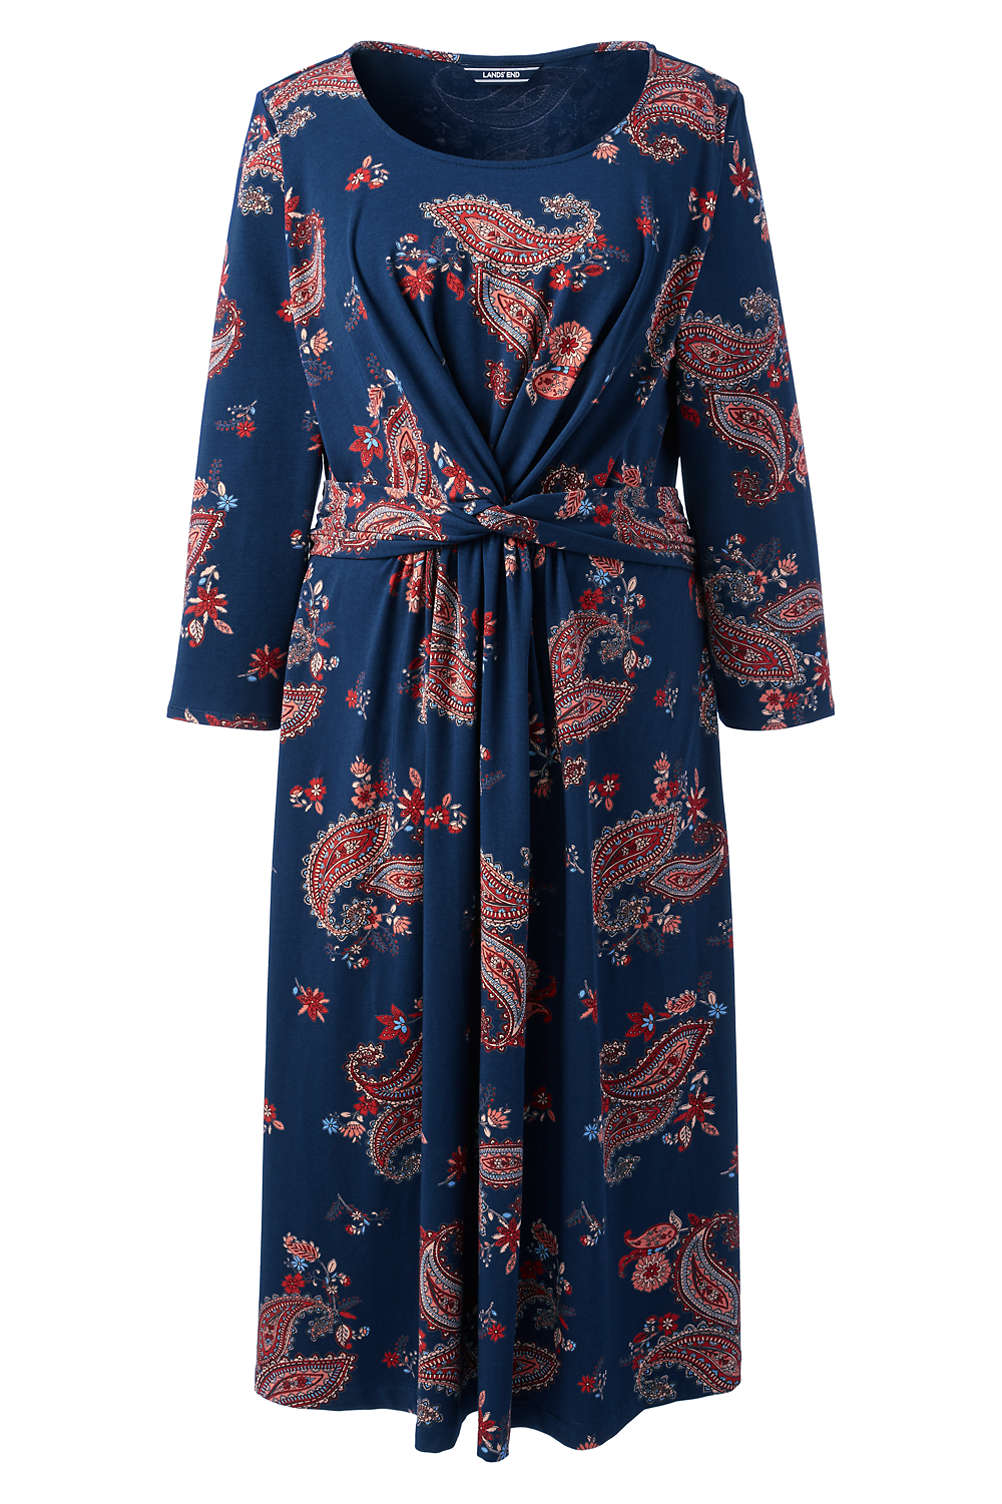 86fb3e1d0e Women s Plus Size 3 4 Sleeve Print Draped Fit and Flare Dress from ...